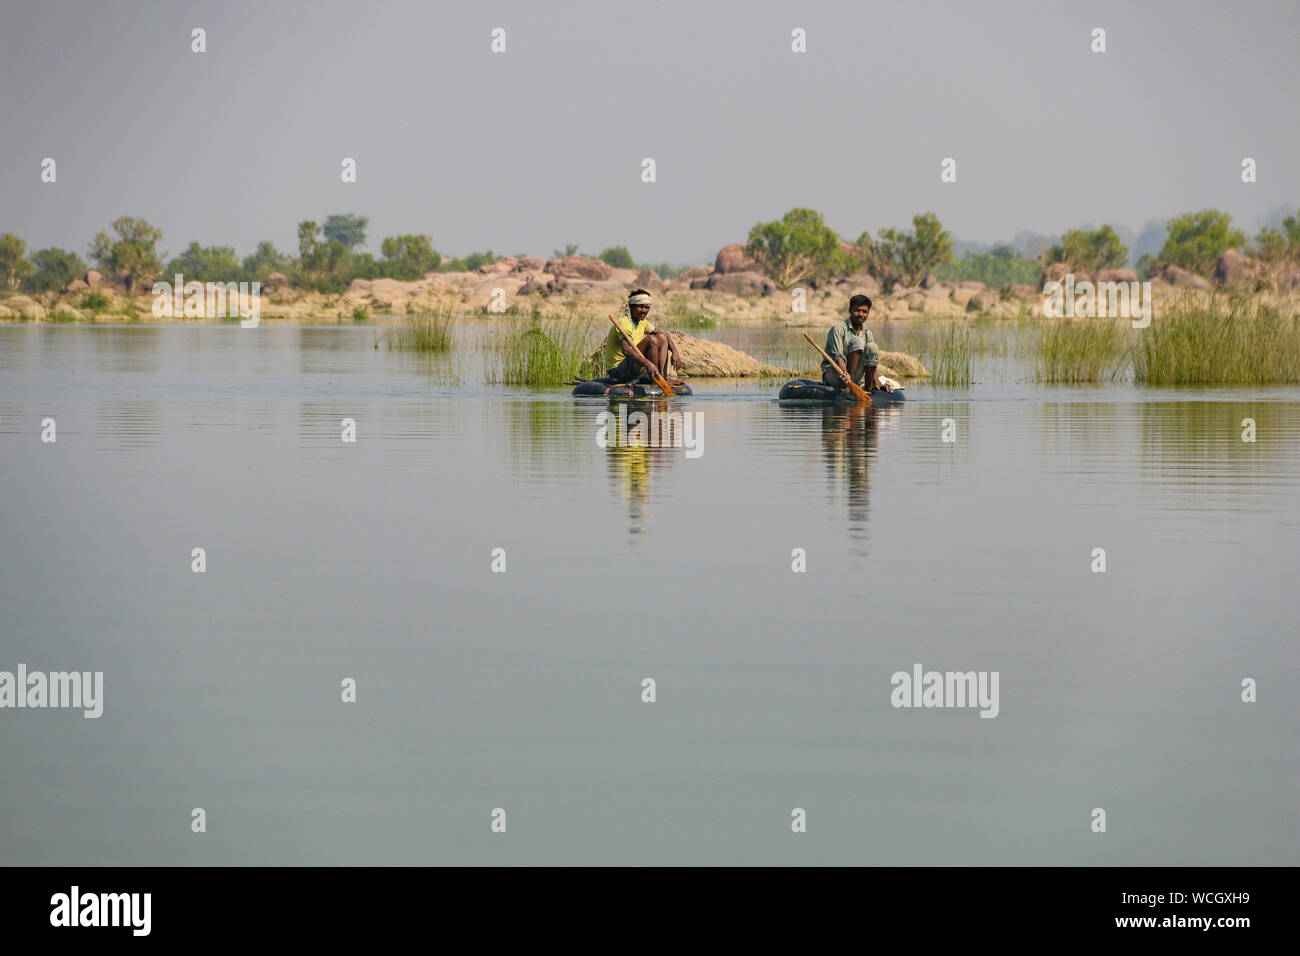 Local fishermen floating on makeshift rafts on the Ken River, Panna National park, Madhya Pradesh, India, Central Asia Stock Photo